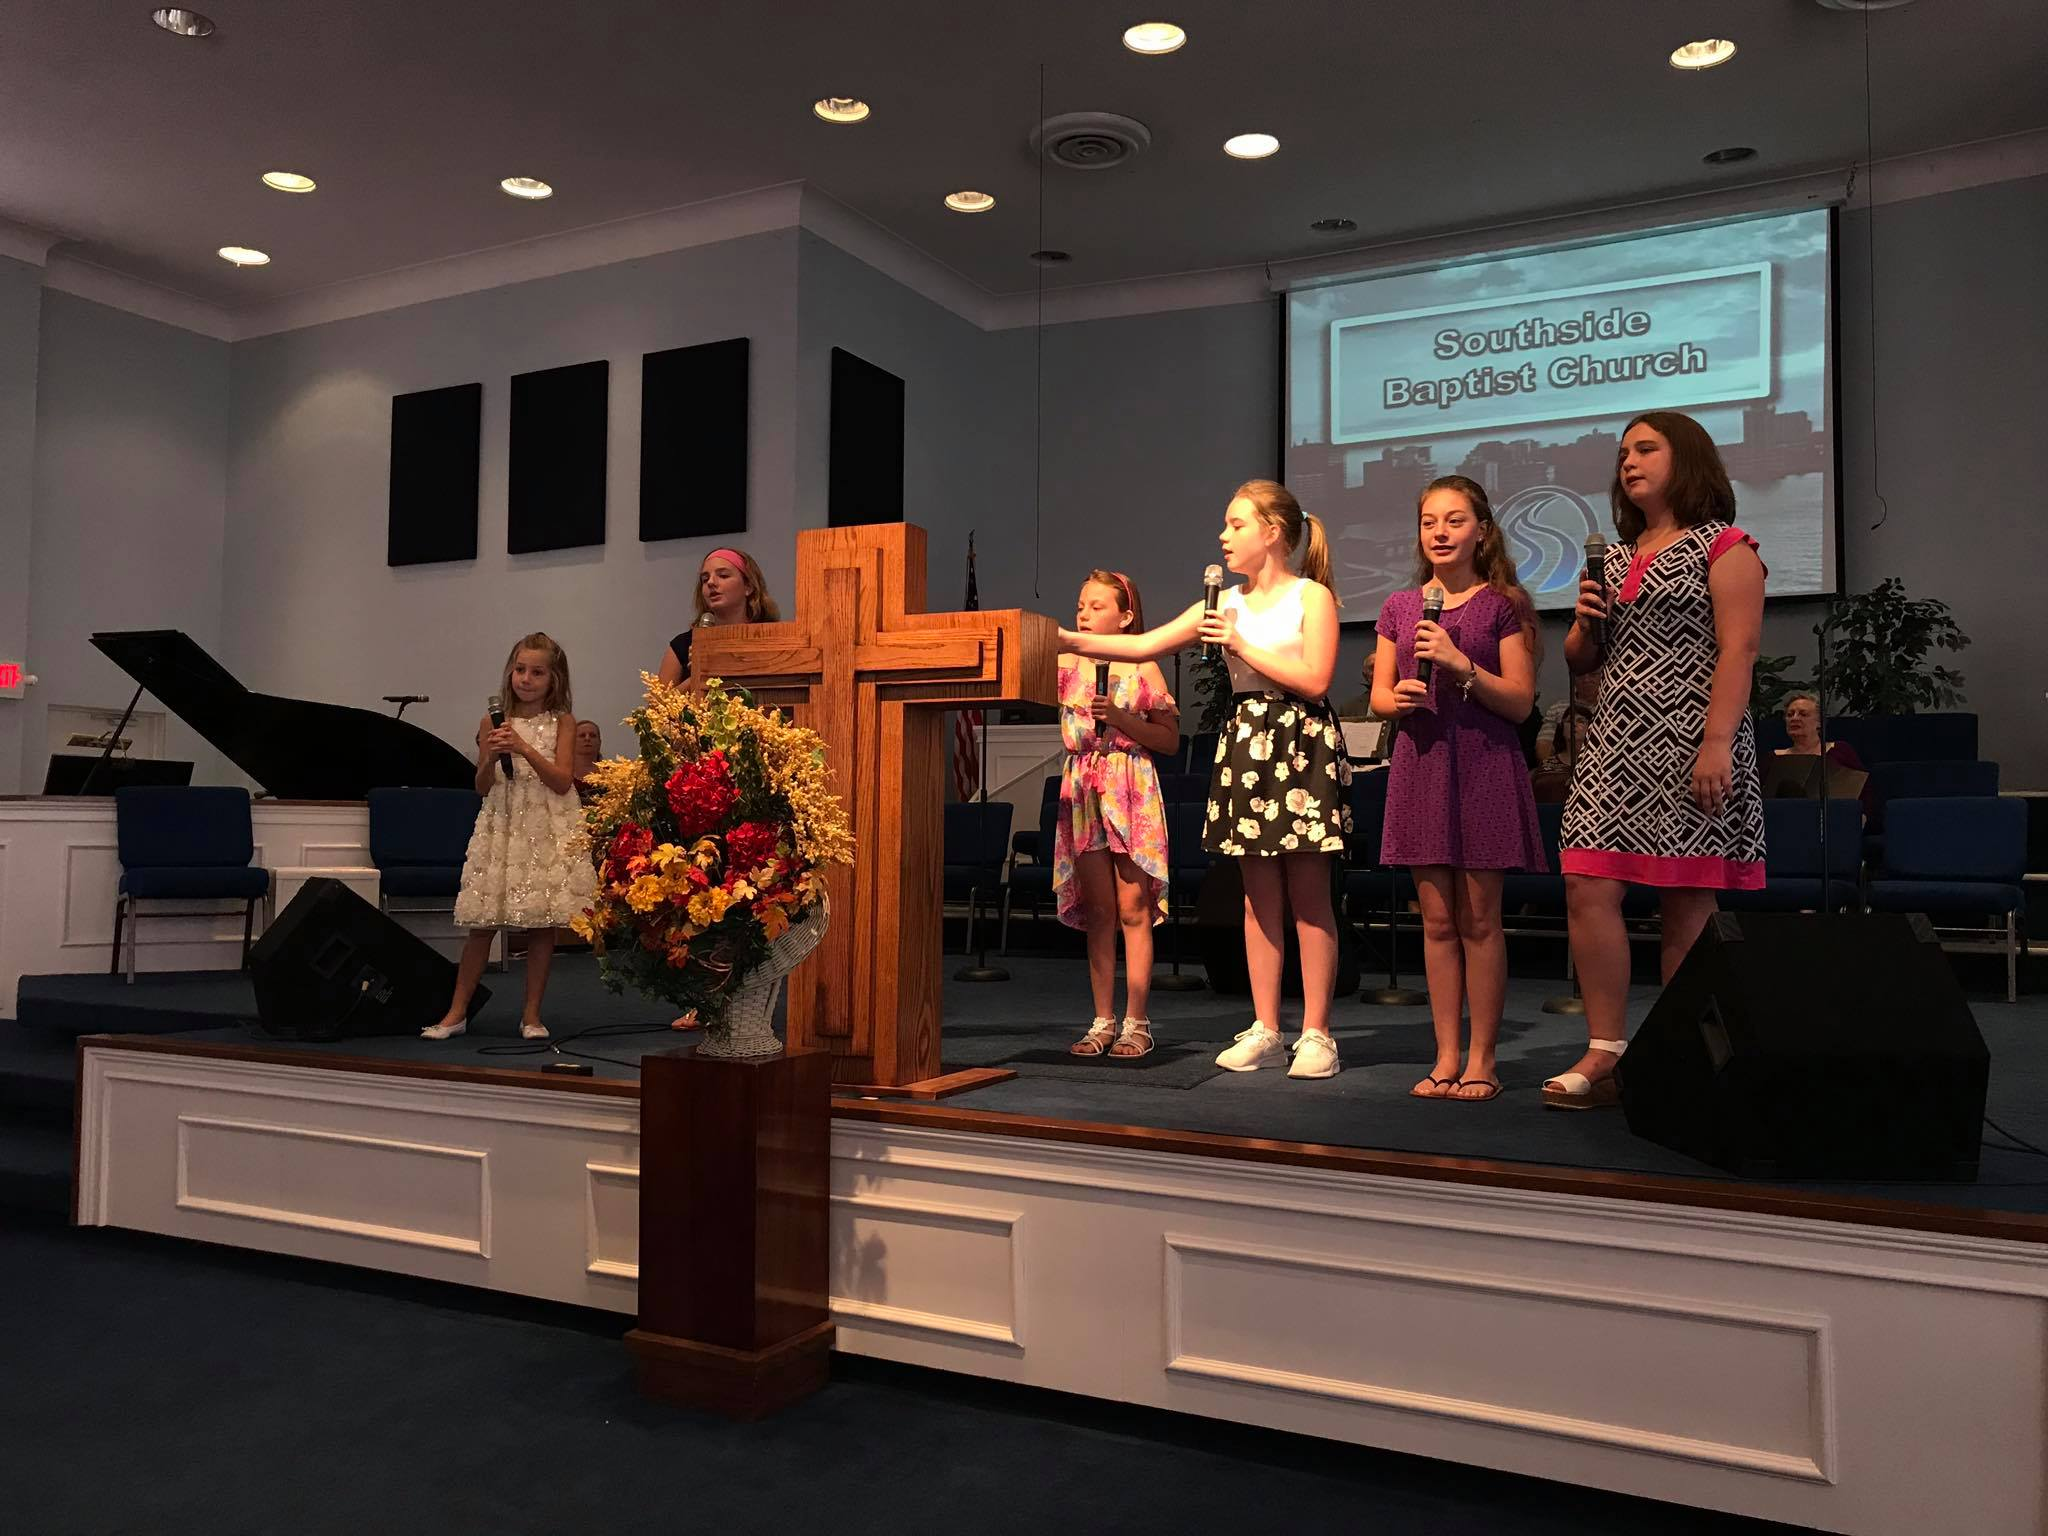 Some of our young people singing in church